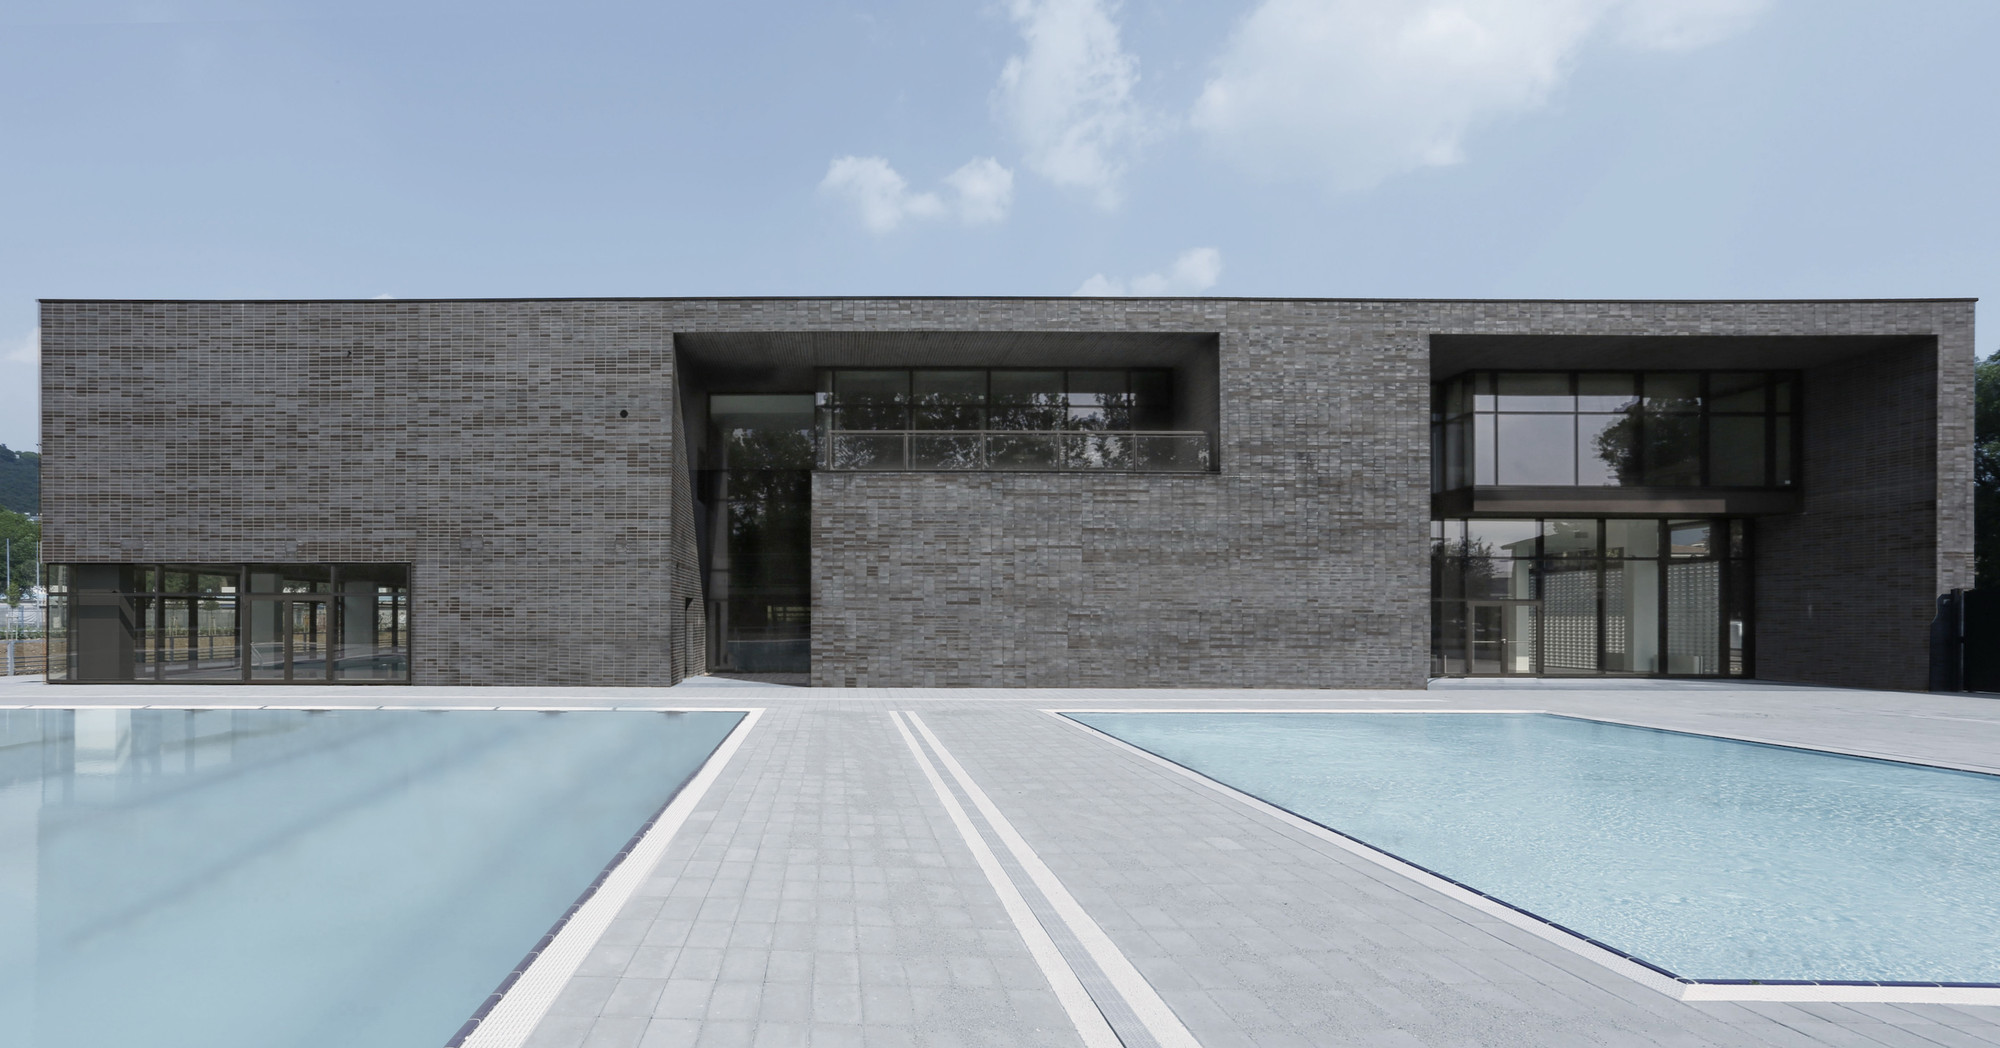 New Swimming Center in Brescia / Camillo Botticini + Francesco Craca + Arianna Foresti + Studio Montanari + Nicola Martinoli, © Niccolò Galeazzi